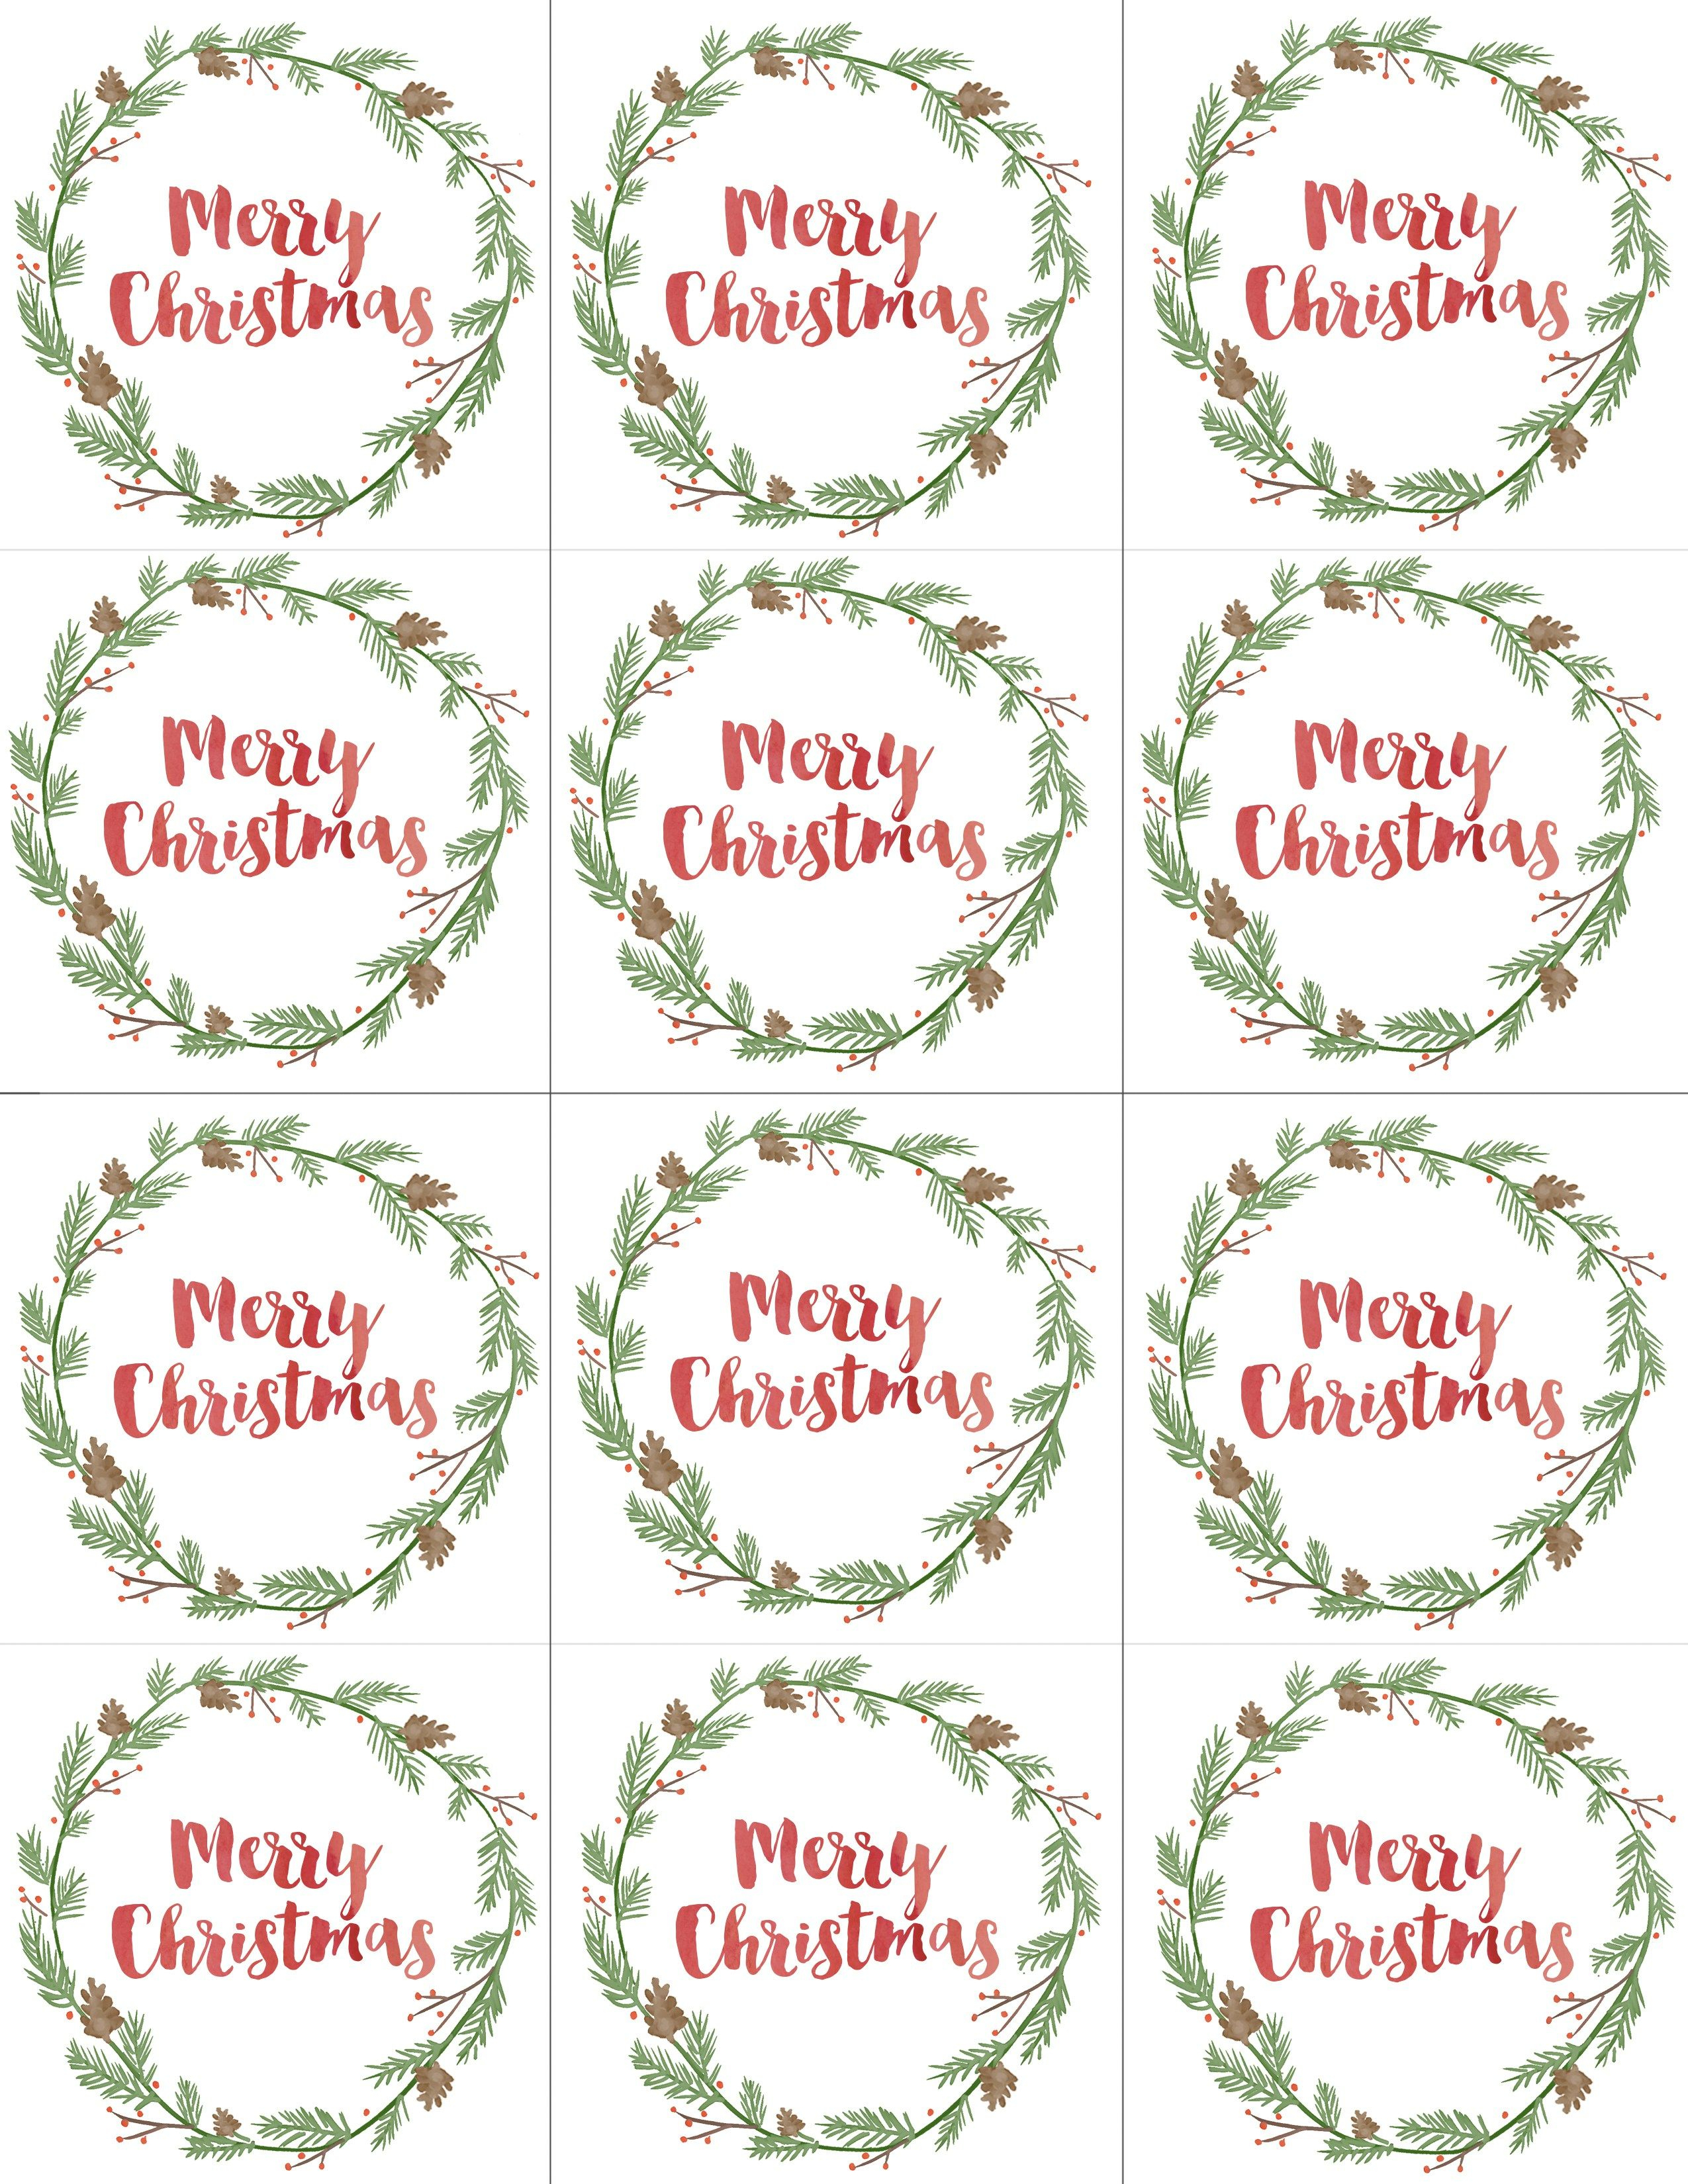 Hand Painted Gift Tags Free Printable   Christmas   Christmas Gift - Free Printable Christmas Labels